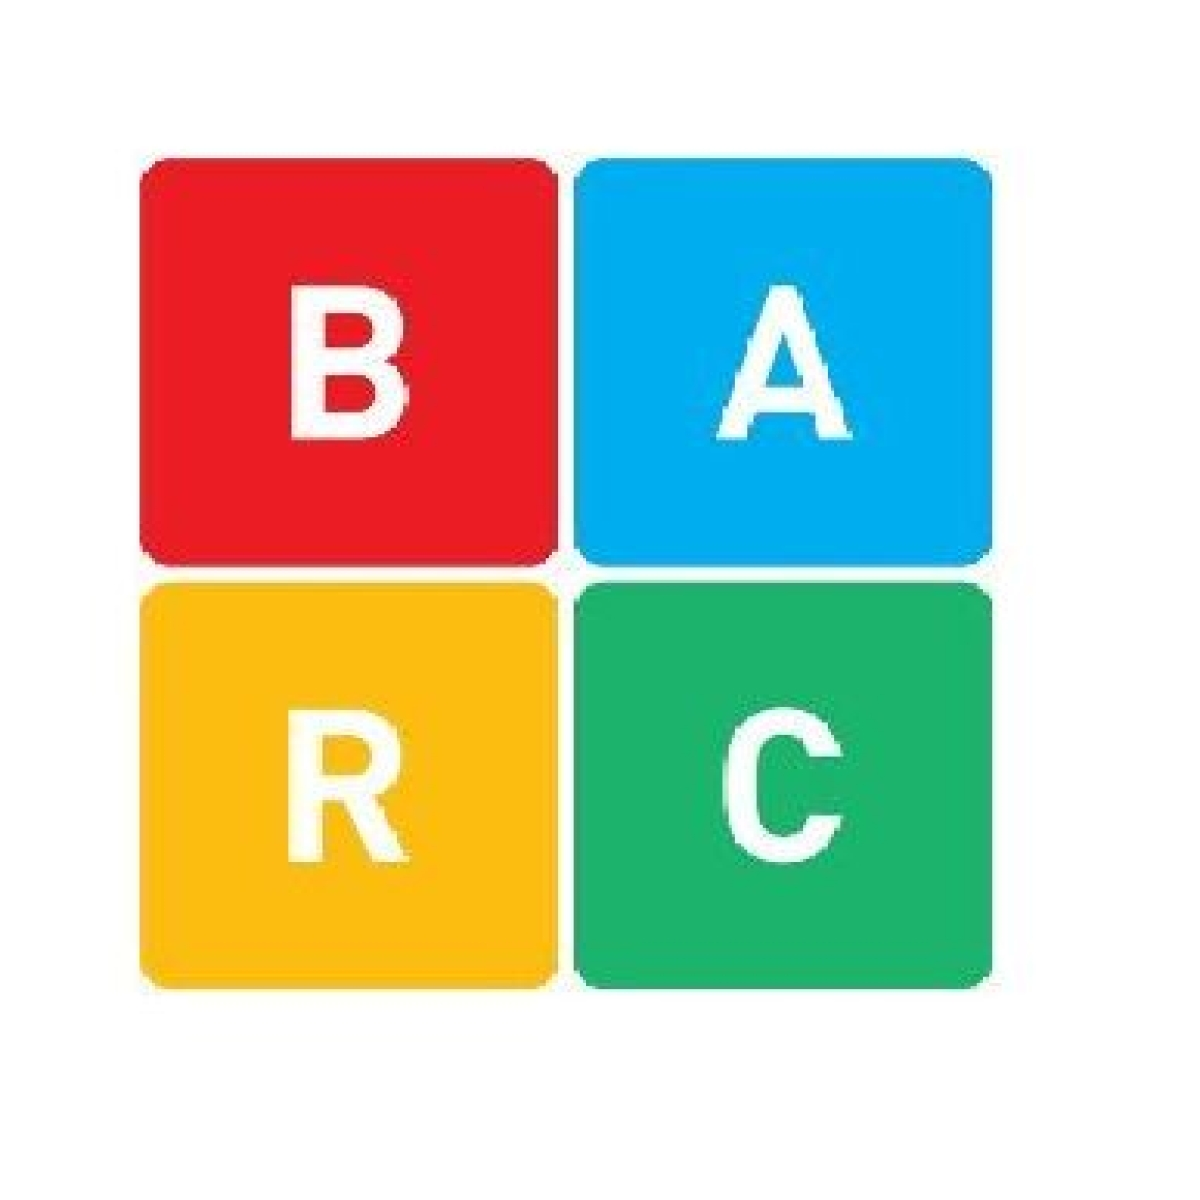 TRP scam: BARC says its efforts focused on individuals; believes channels committed to clean ecosystem